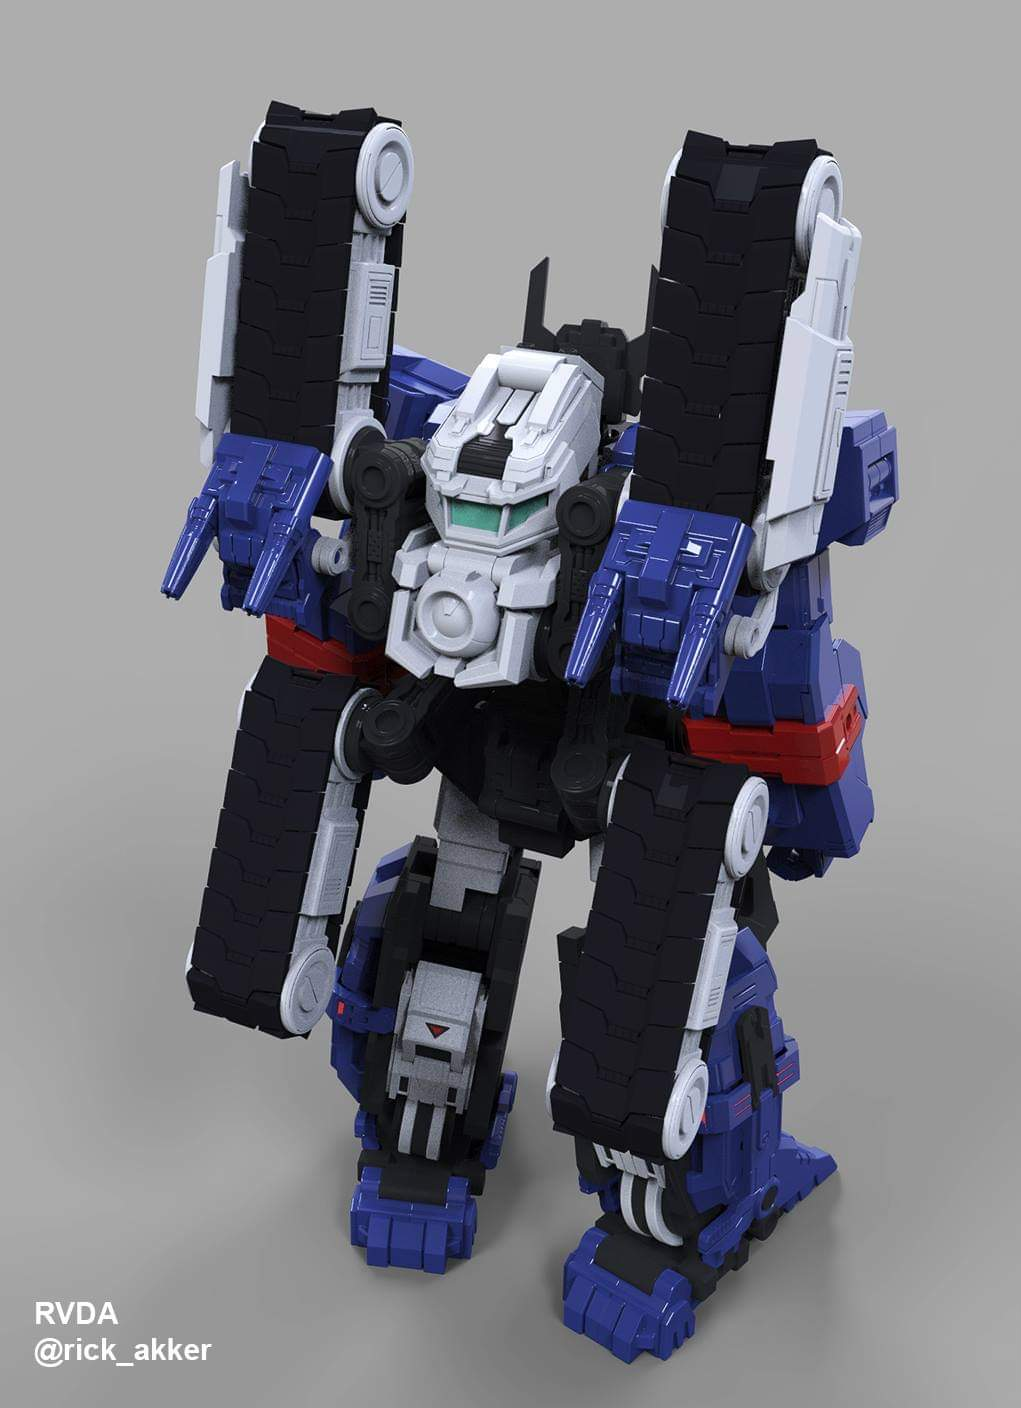 [Mastermind Creations] Produit Tiers - R-50 Supermax - aka Fortress/Forteresse Maximus des BD IDW OfzzIgn2_o